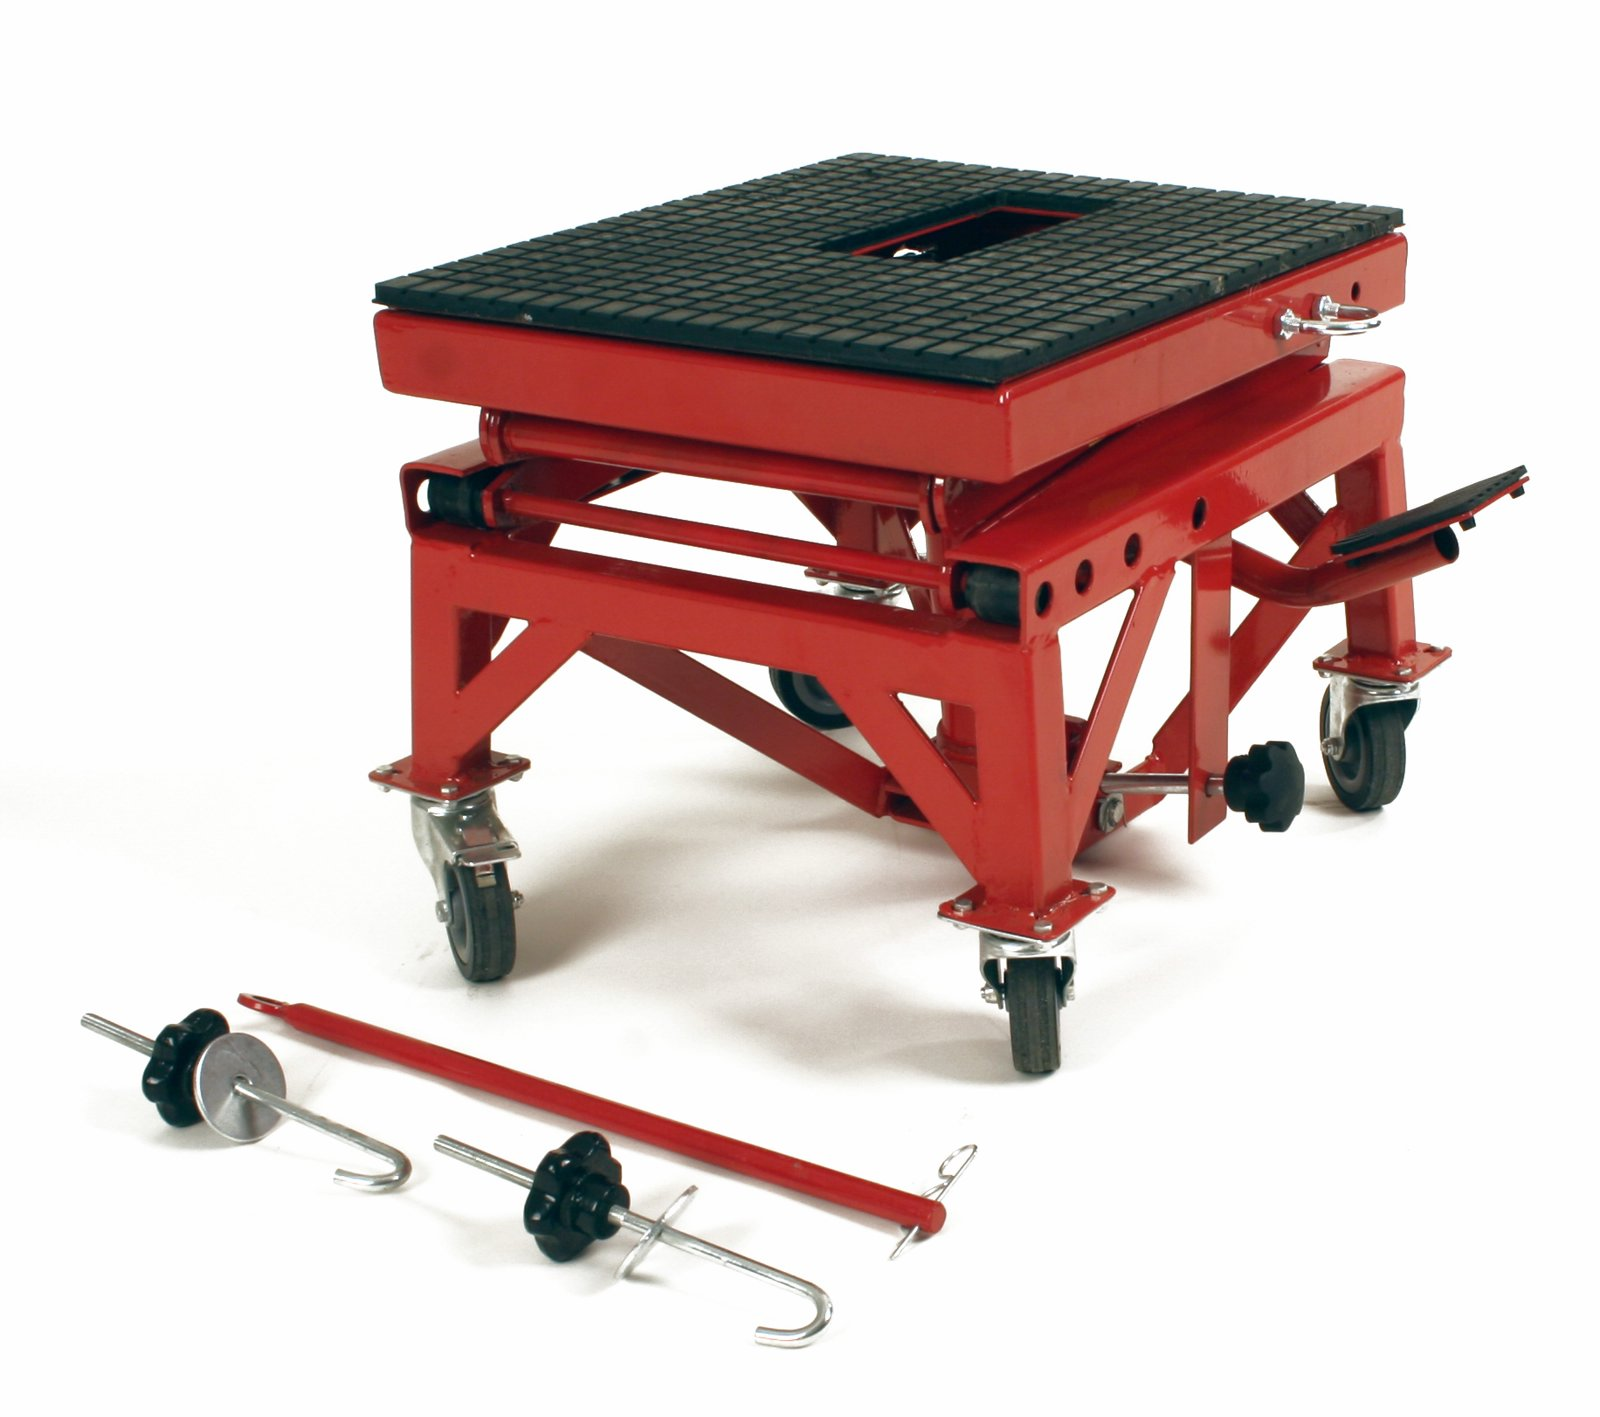 "Dragway Tools 300 Lb Motorcycle Dirt Bike Stand Jack Lift Cart w/ 3"" Rubber Locking Wheels at Sears.com"